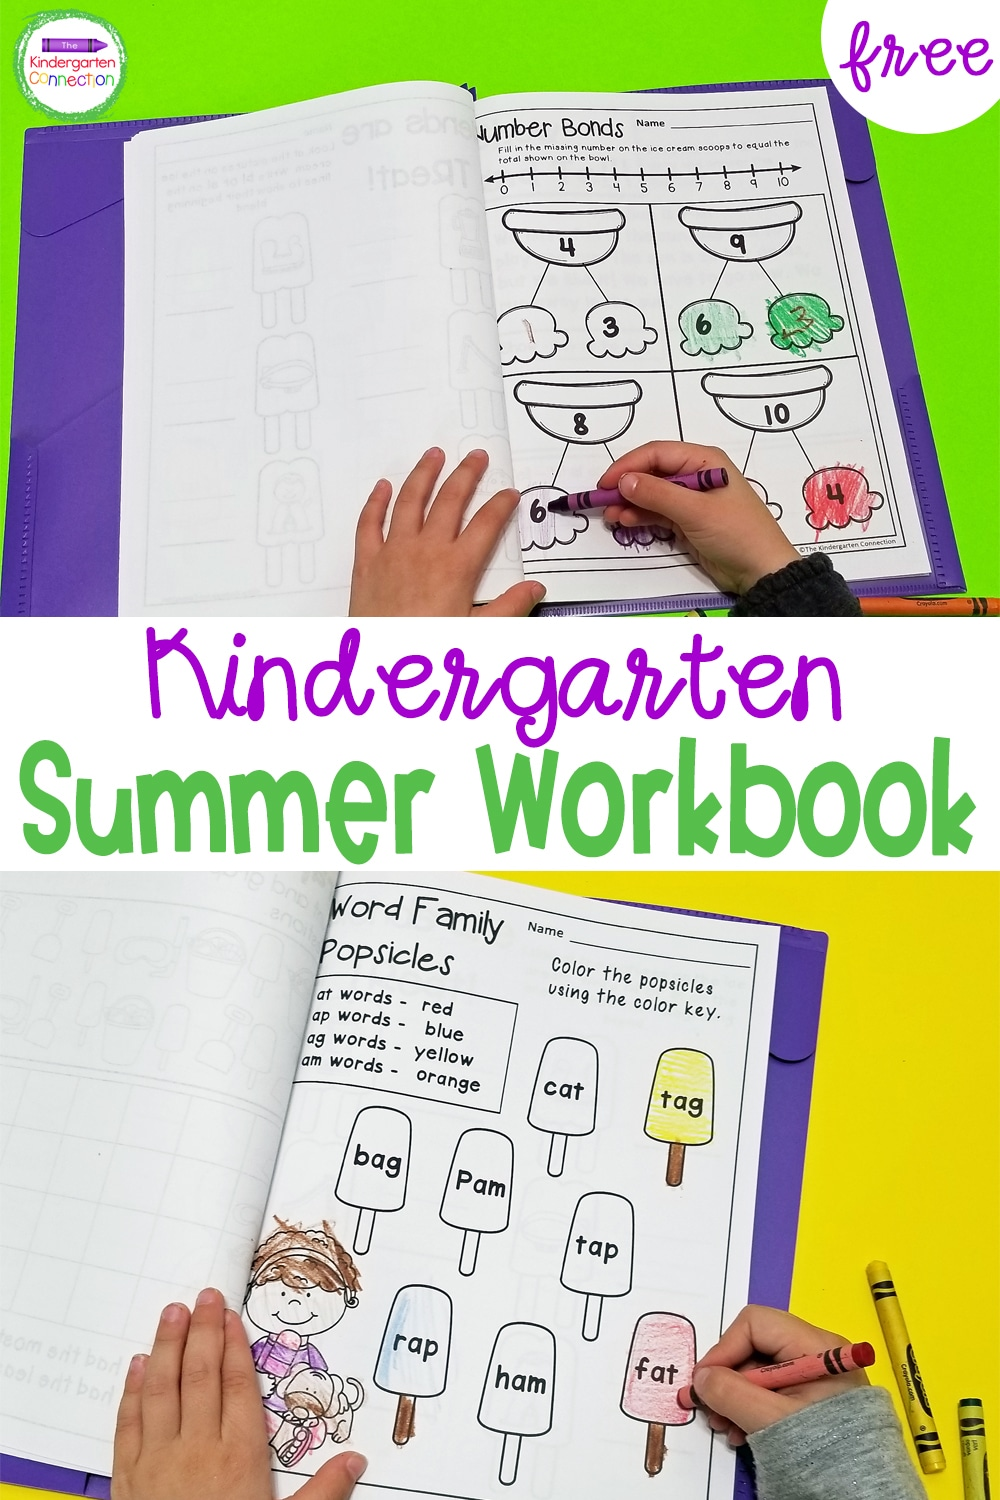 Grab this free printable Summer Homework for Kindergarten sampler pack to send home with your students to keep their skills sharp over break!